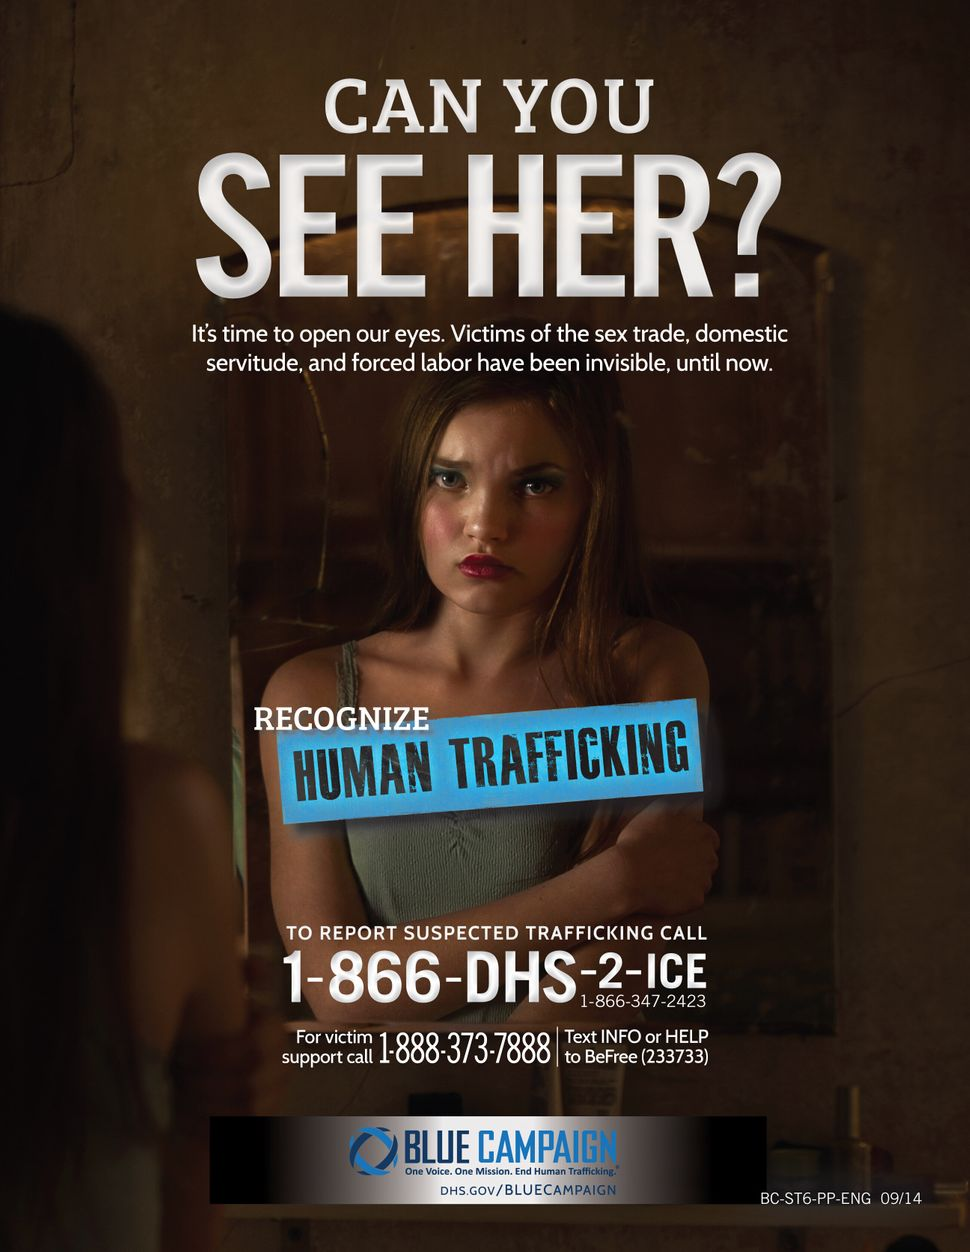 Awareness campaigns depict a version of trafficking that rarely happens in real